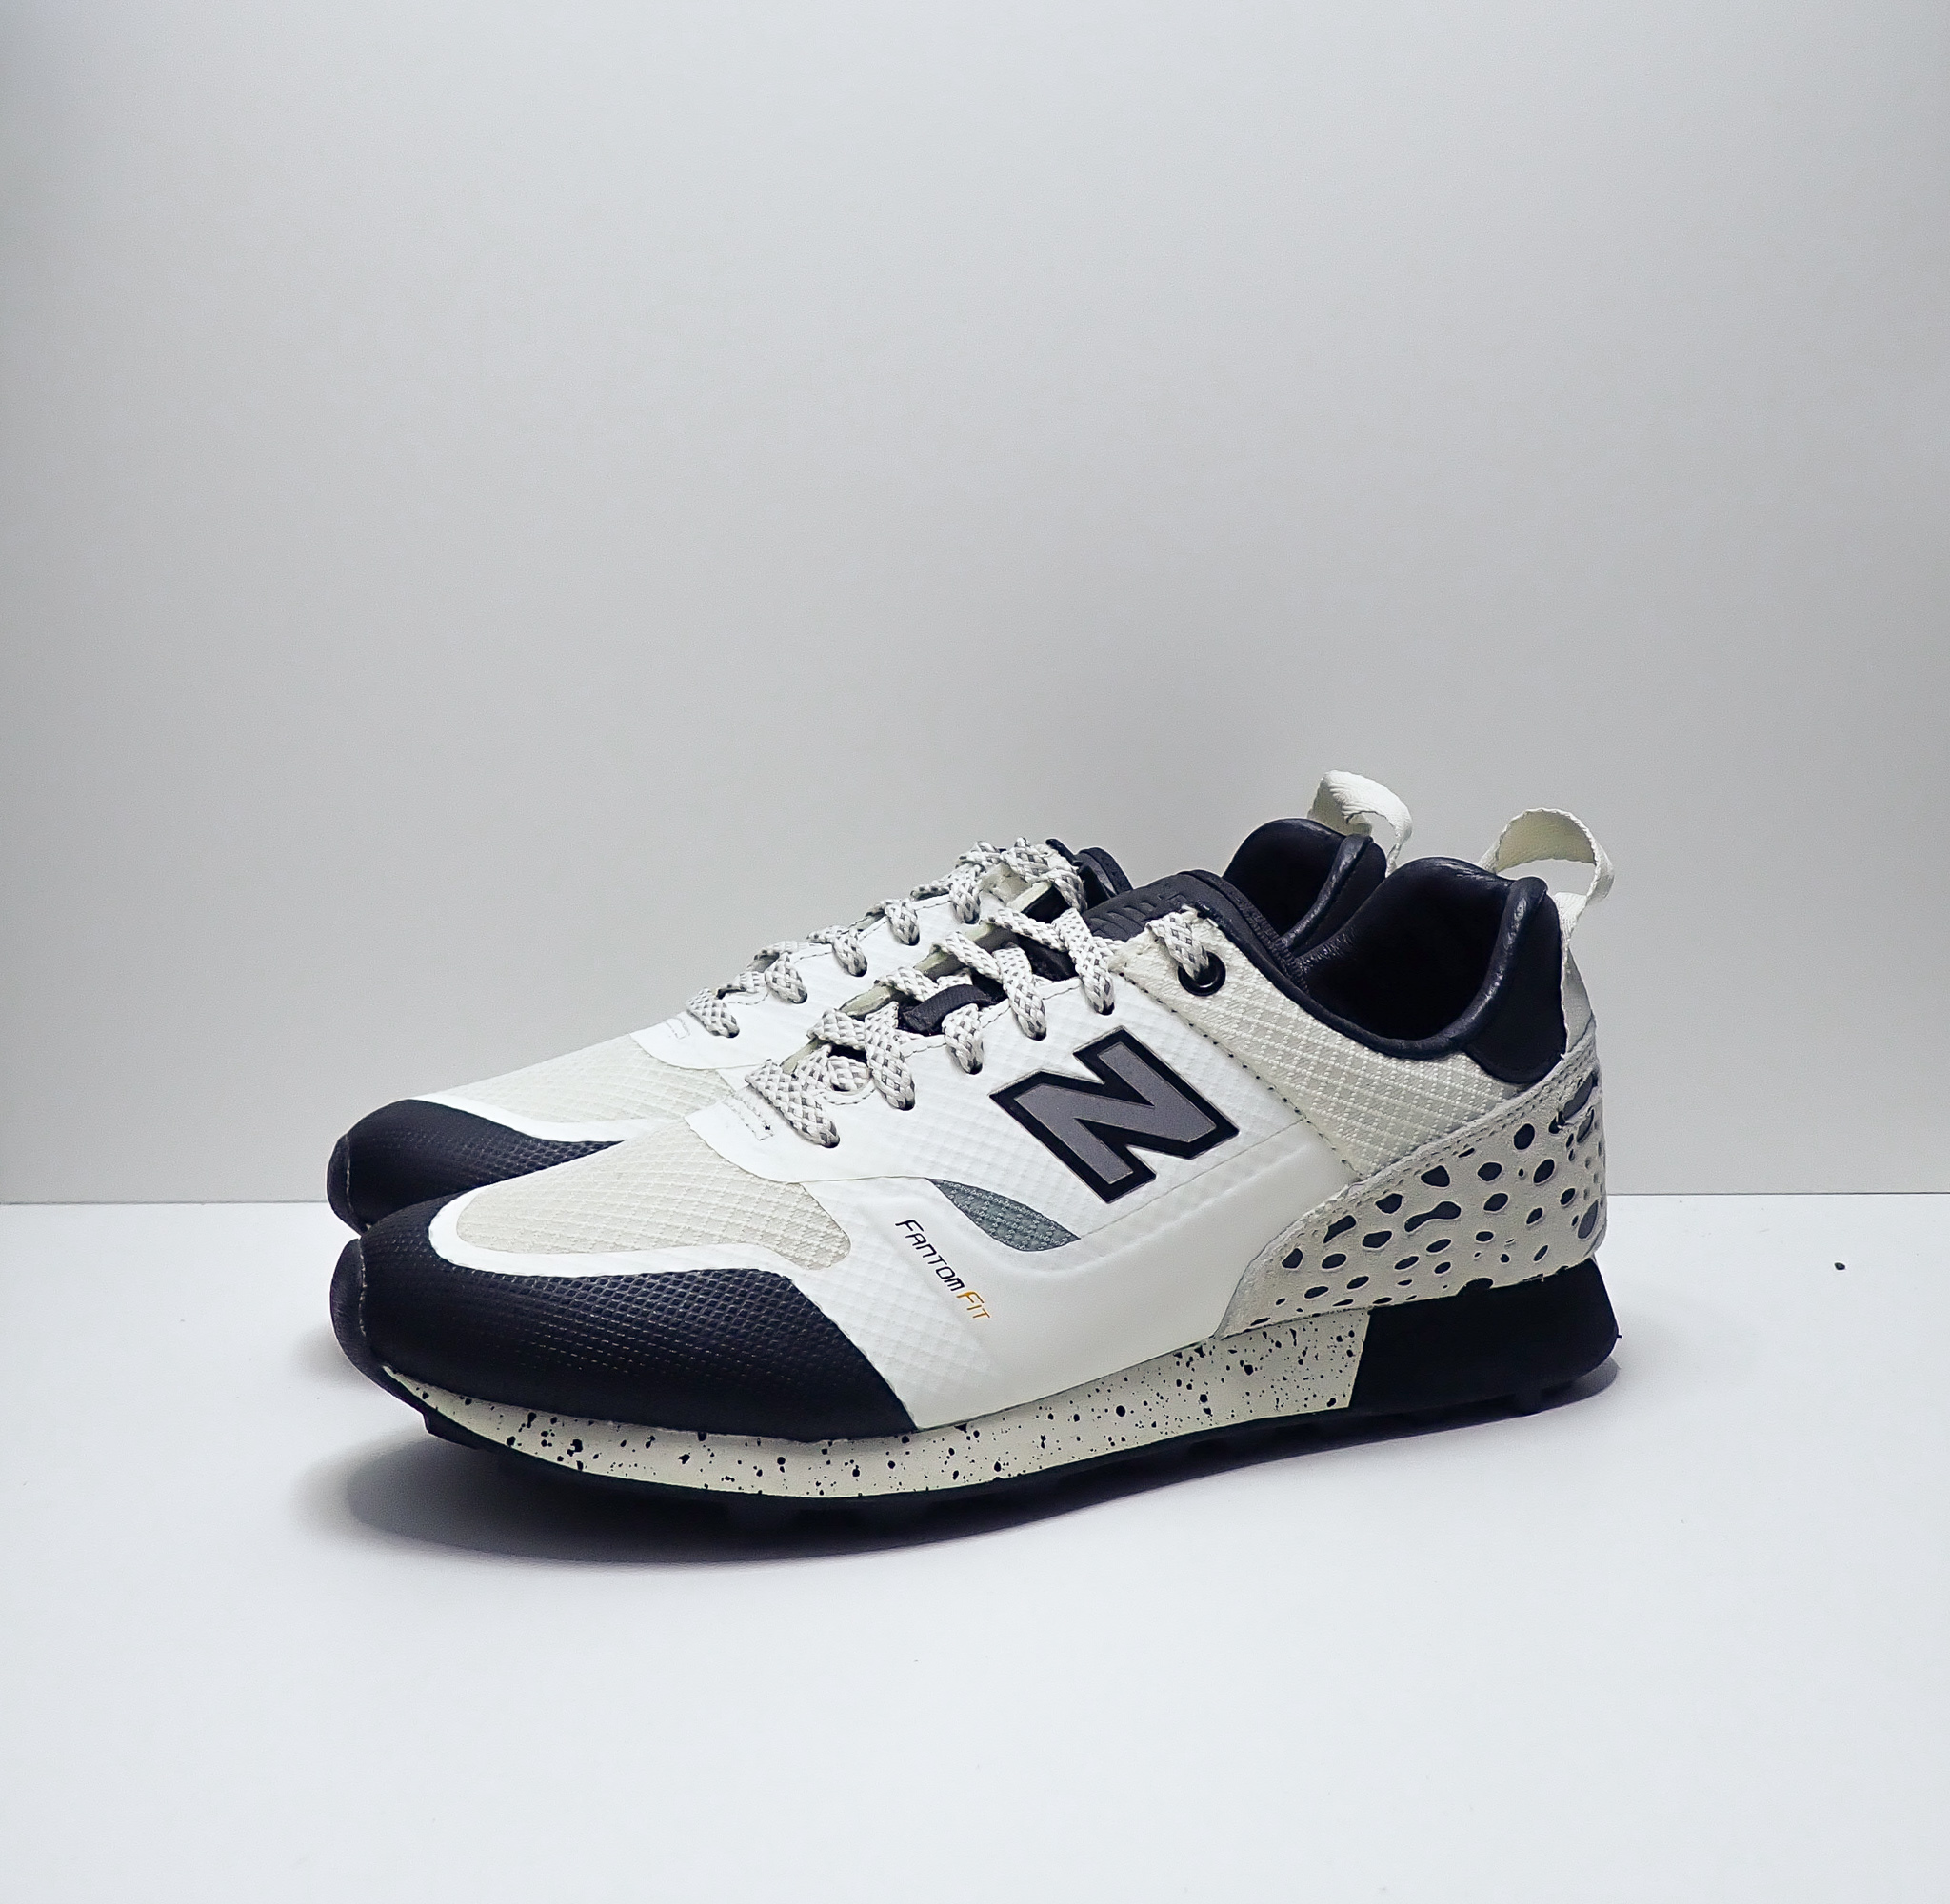 New Balance Trailbuster x Undefeated